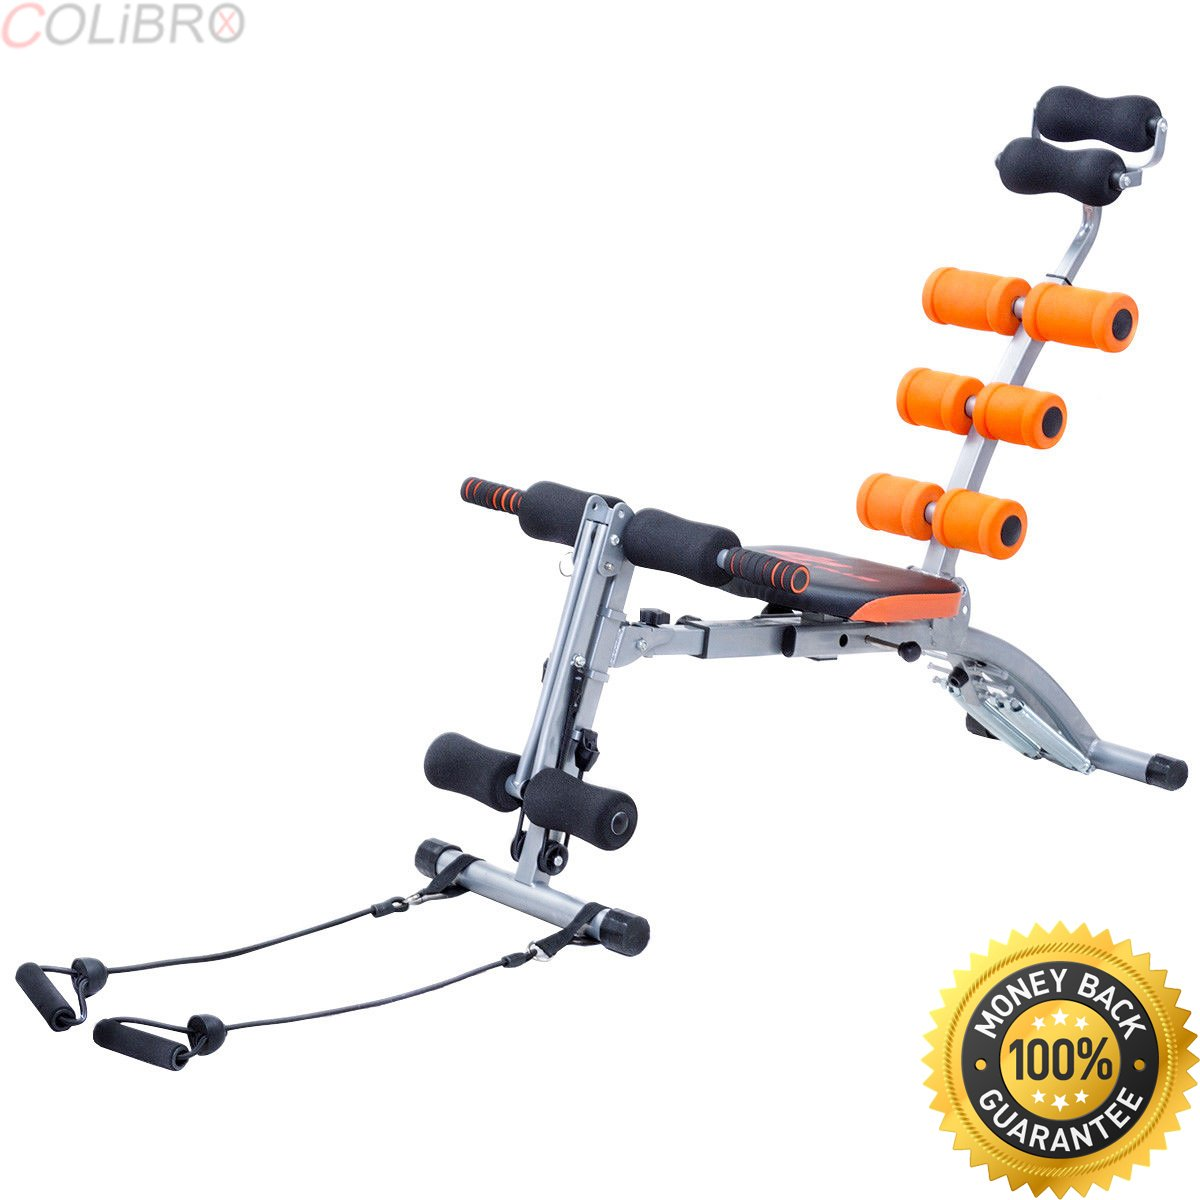 COLIBROX--5 In 1 Multi-functional Twister AB Rocket Abdominal Trainer Core Trainer Bench. ab trainer electric. best waist trainer for weight loss.electrical-stimulation abdominal belts.ab trainer pro.